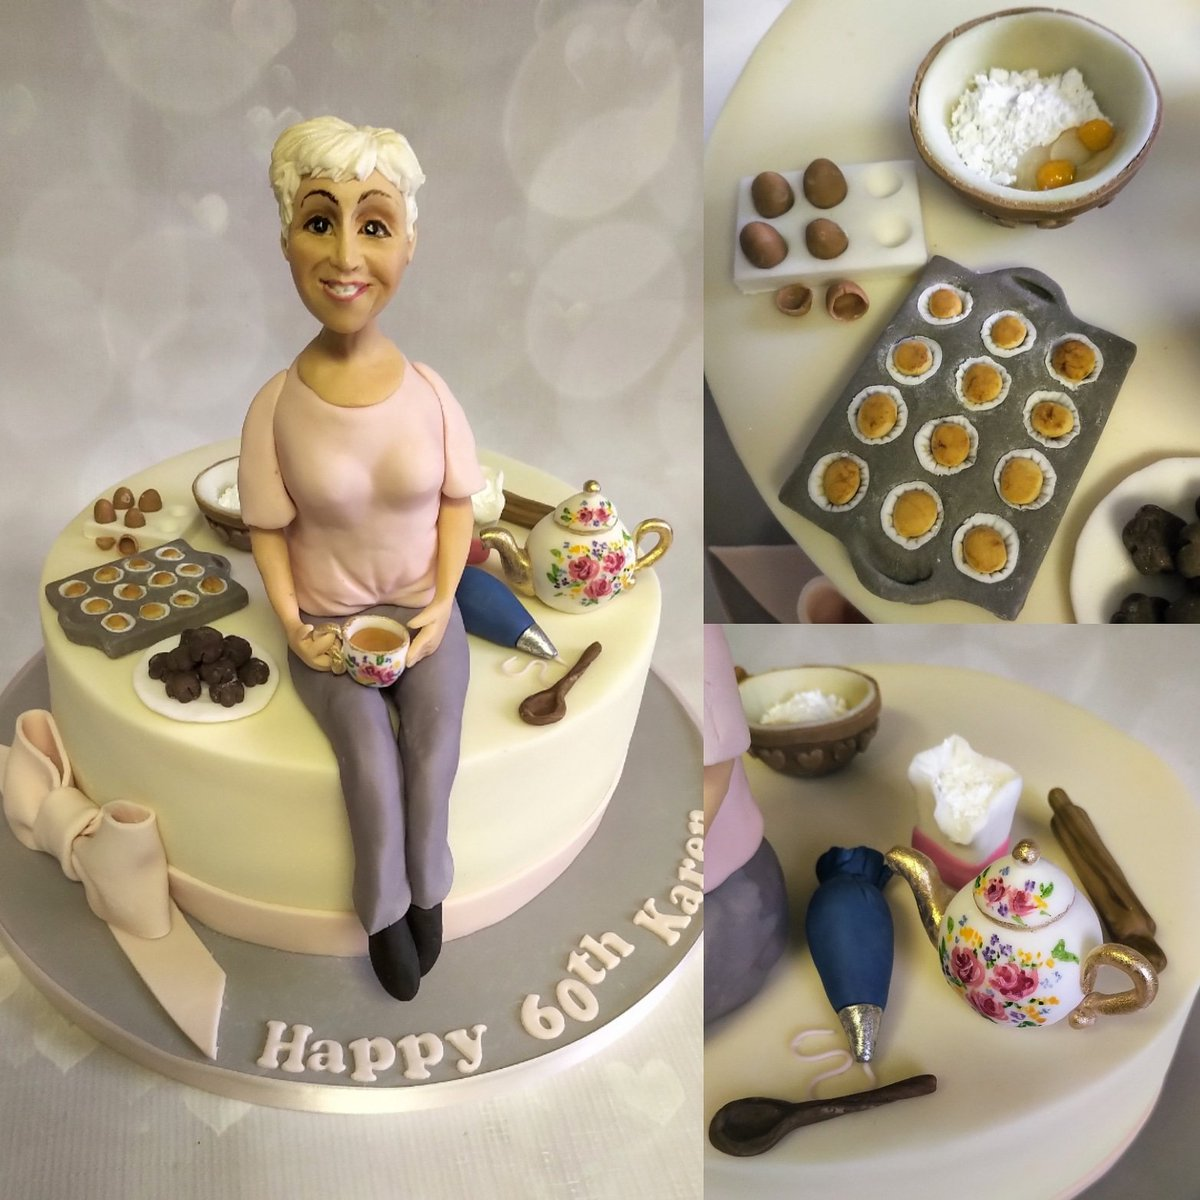 Liverpool Cake Co Auf Twitter 60th Birthday For A Lady Who Loves Baking And Tea Loved Making All The Little Paraphernalia Bits Bobs